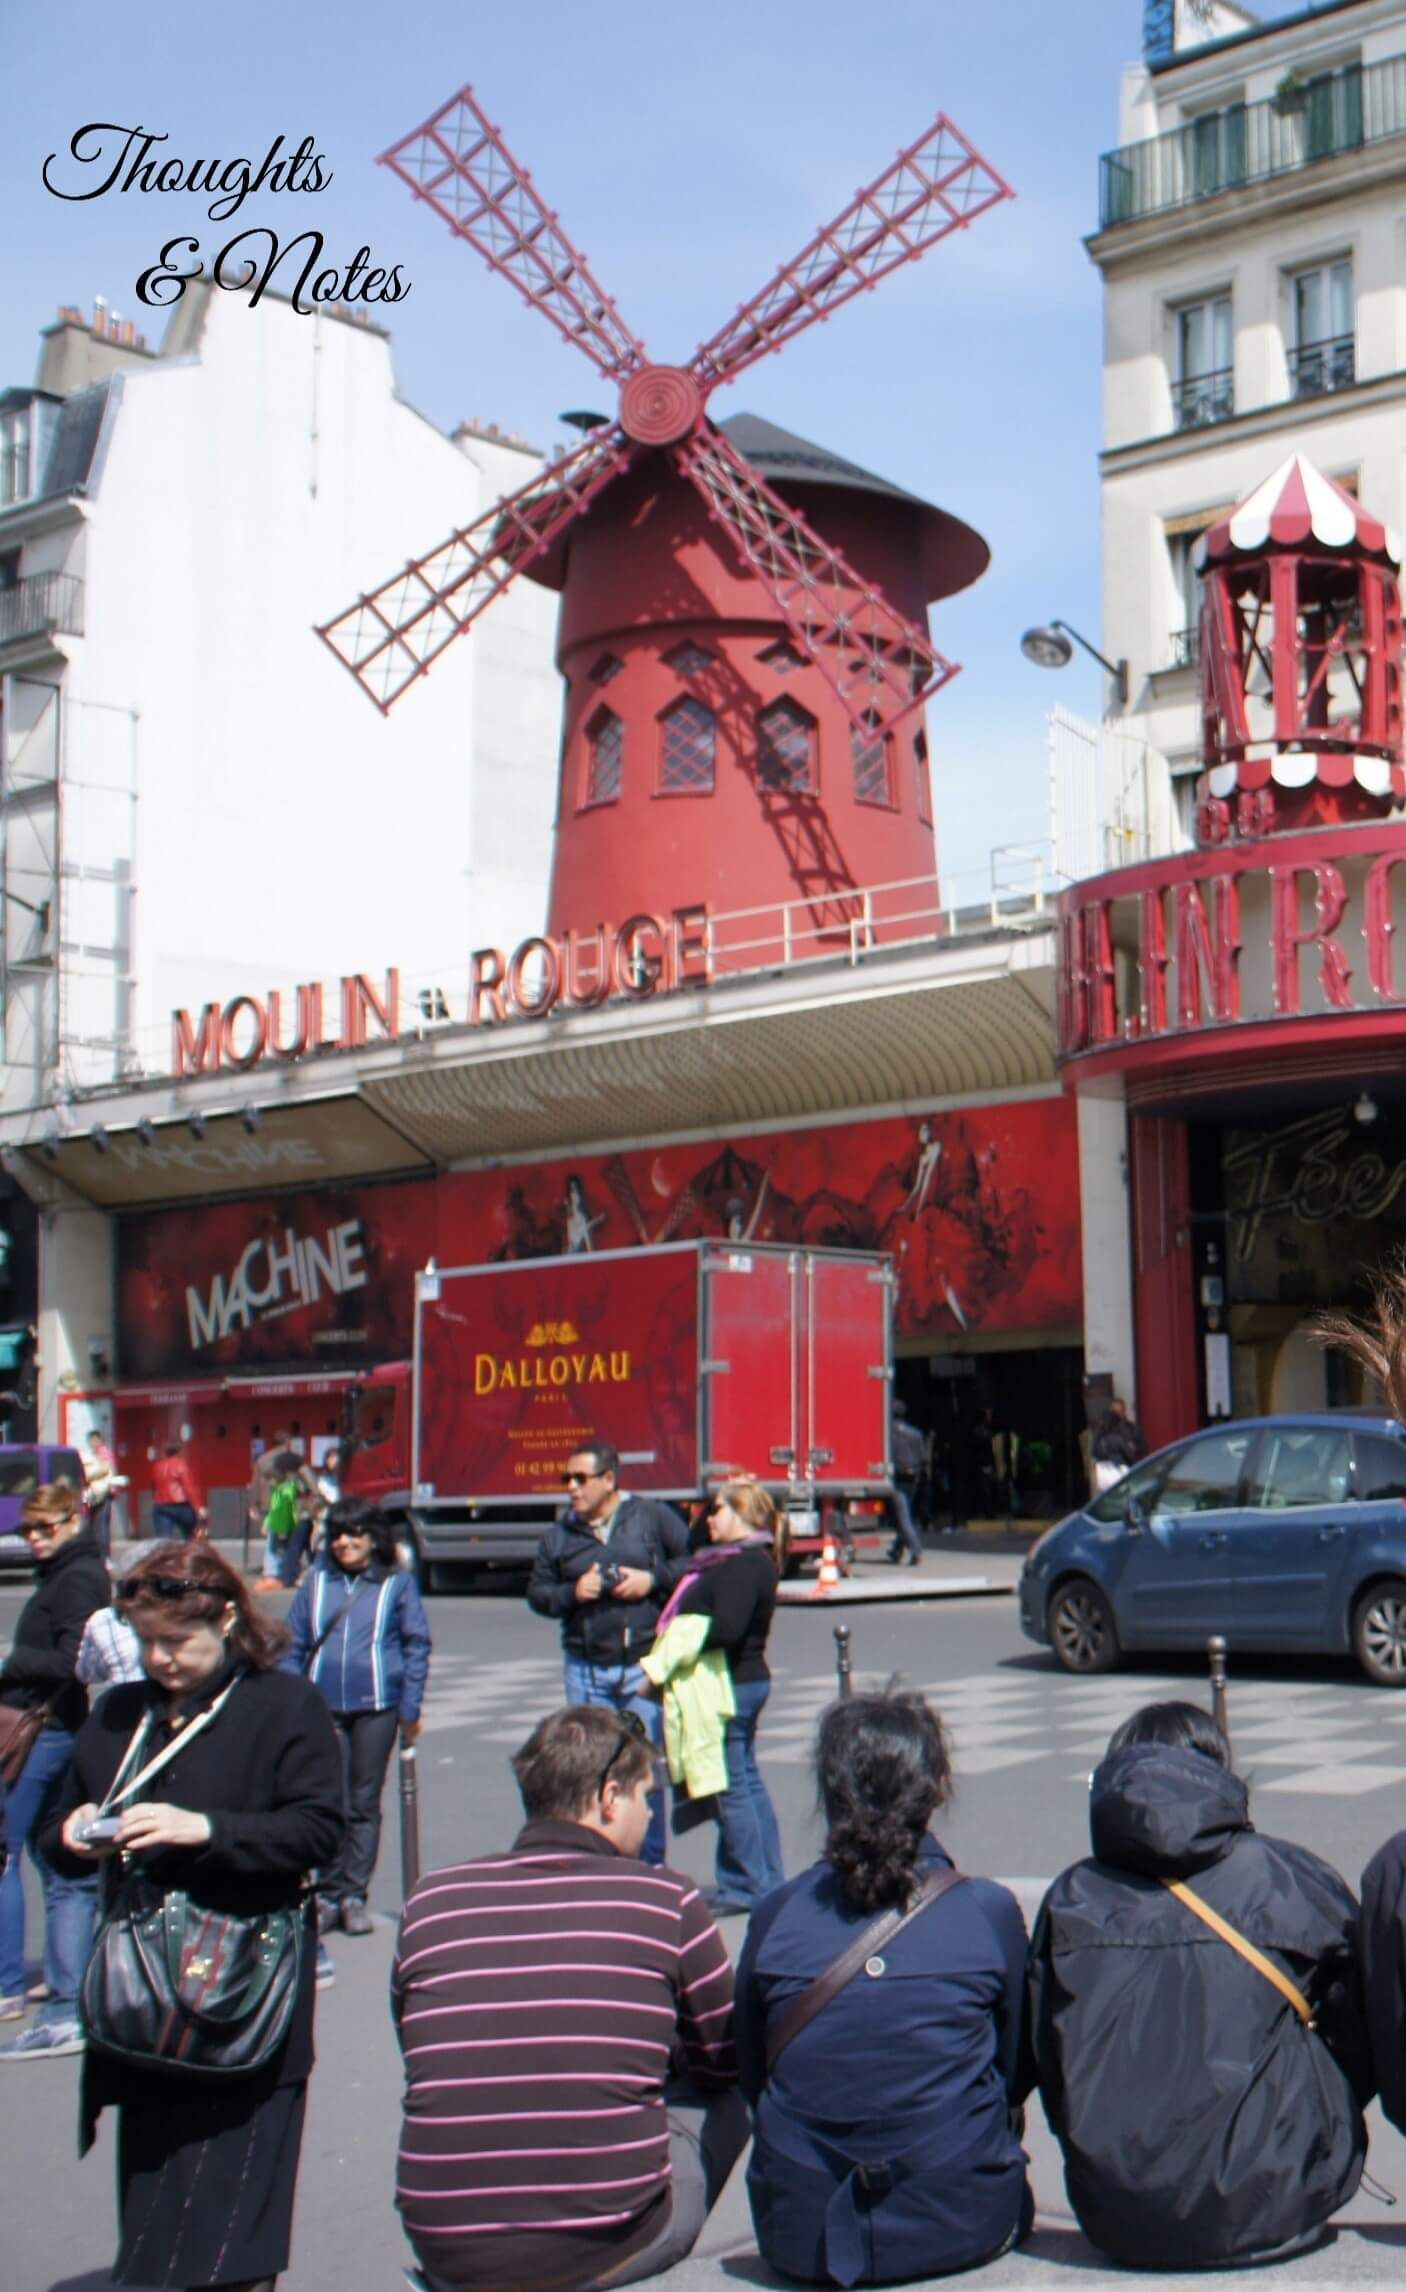 Le Moulin Rouge France Visit Travel One Week In Paris Day 3 Thoughts Notes Blog Paris Guide Visit Paris Thoughts